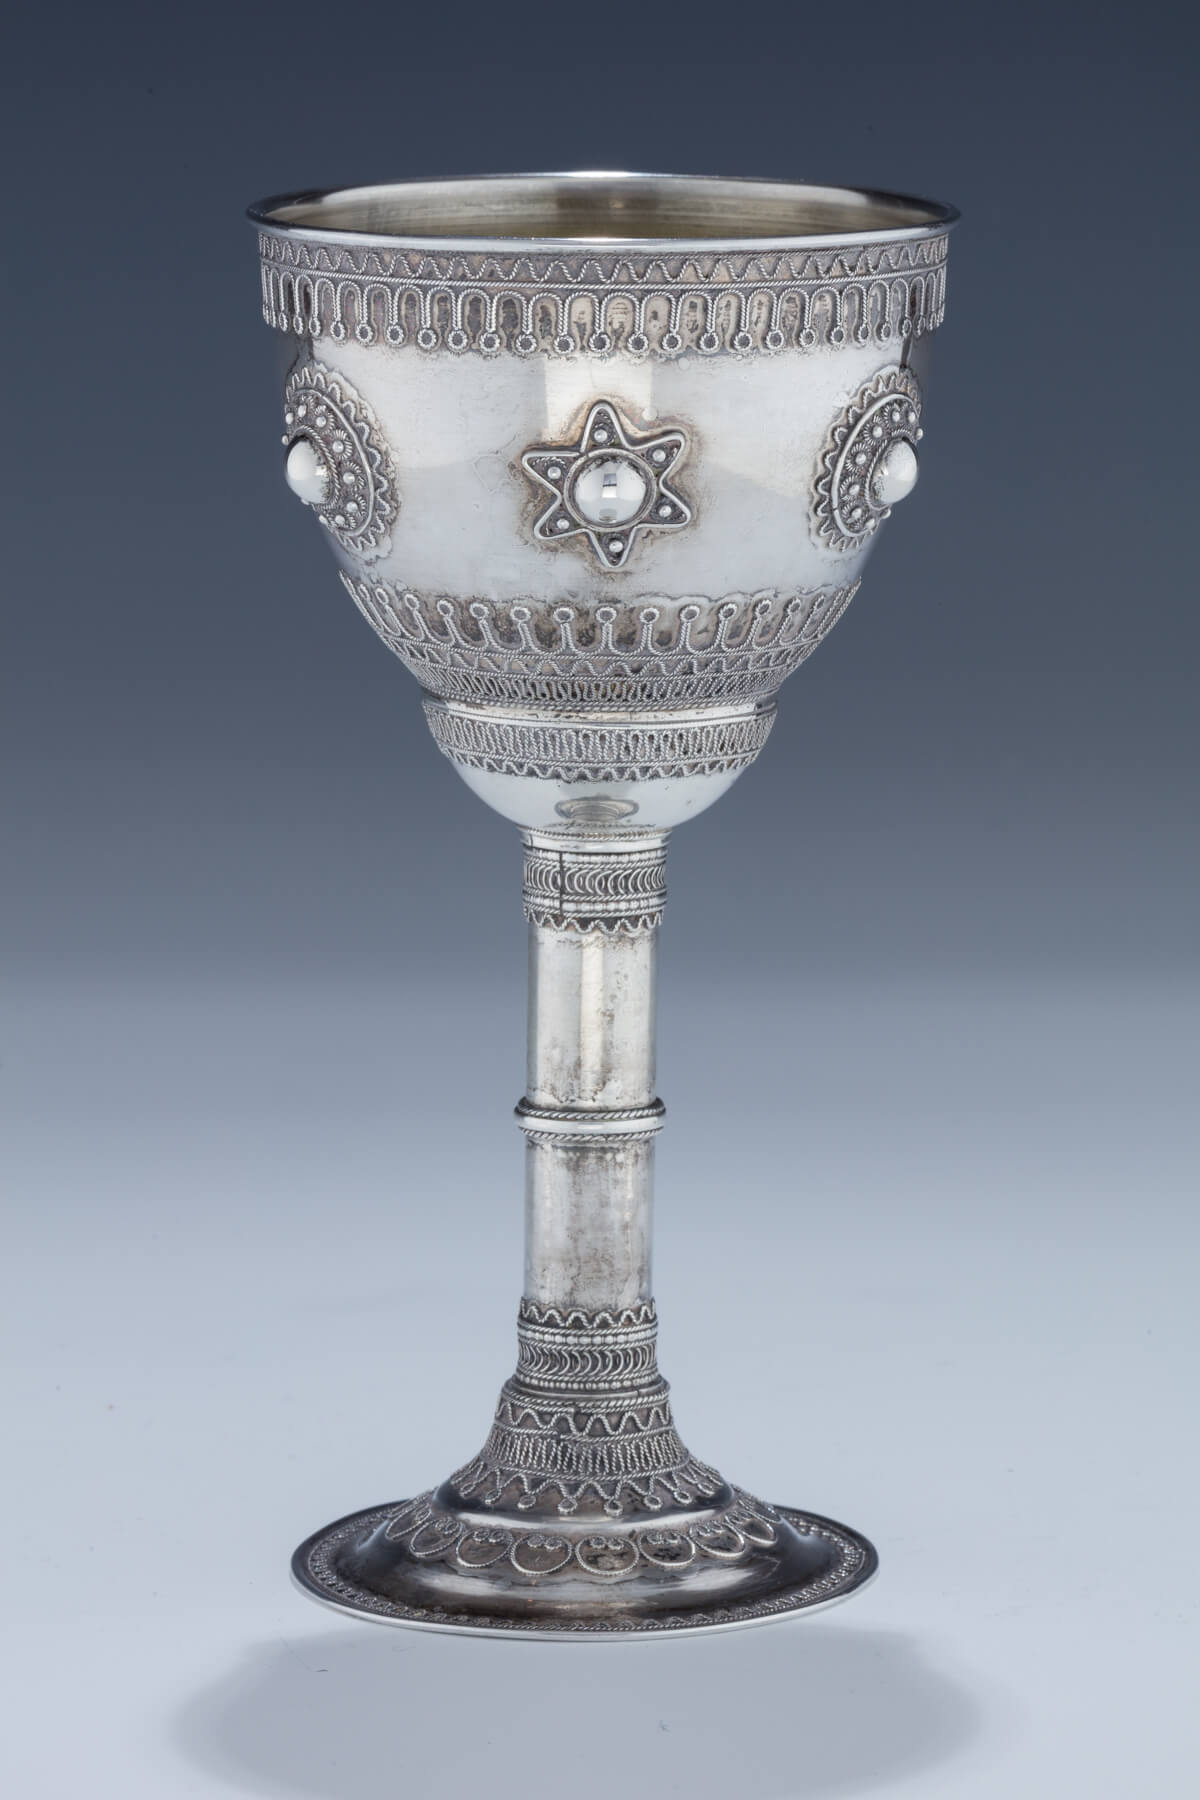 087. An Early Silver Kiddush Goblet